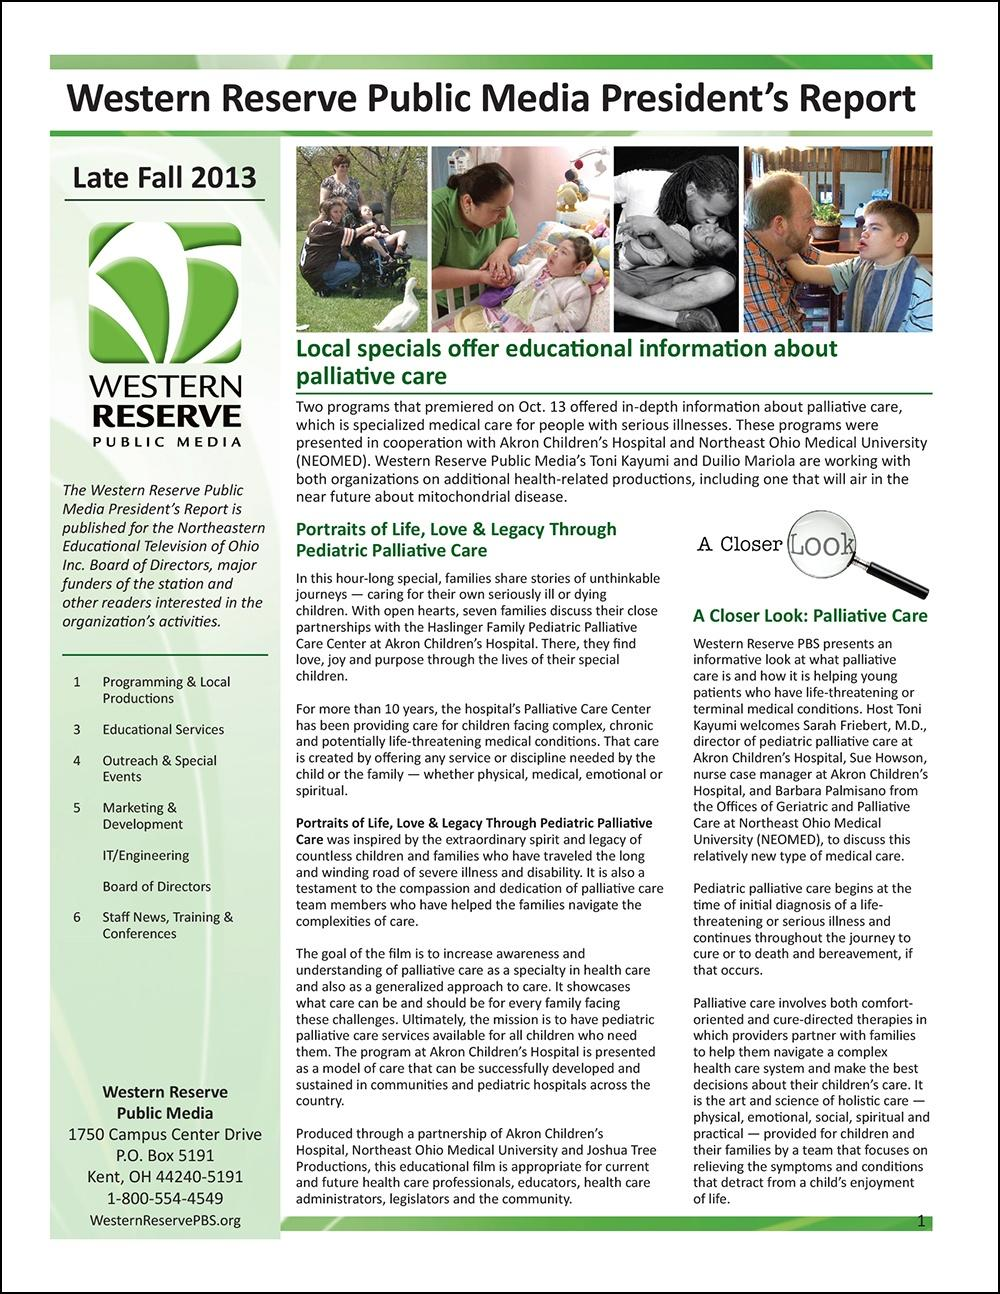 Late Fall 2013 - Volume 7, Issue 4